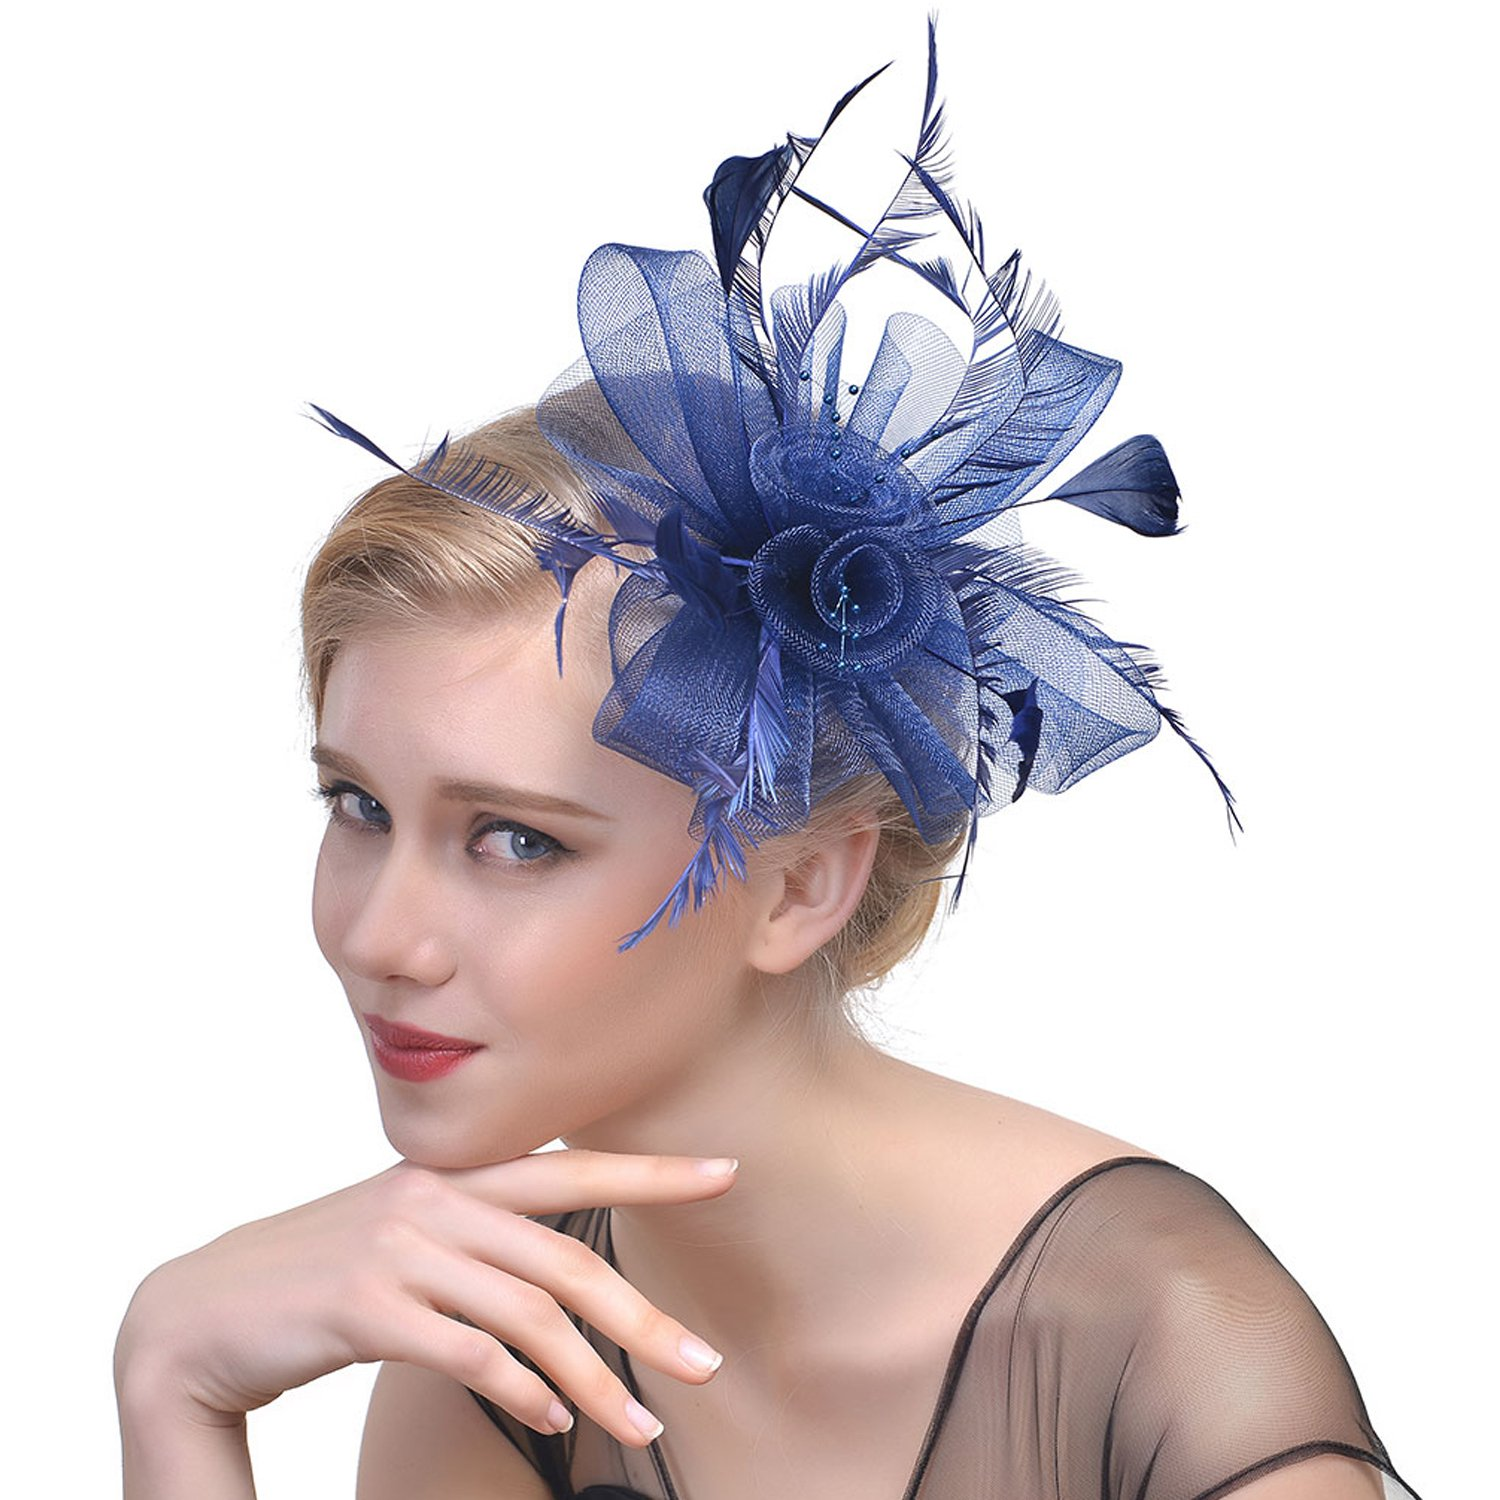 Mwfus Women Handmade Flower Mesh Veils Fascinator Clip Hat Wedding Cocktail Party Headpiece